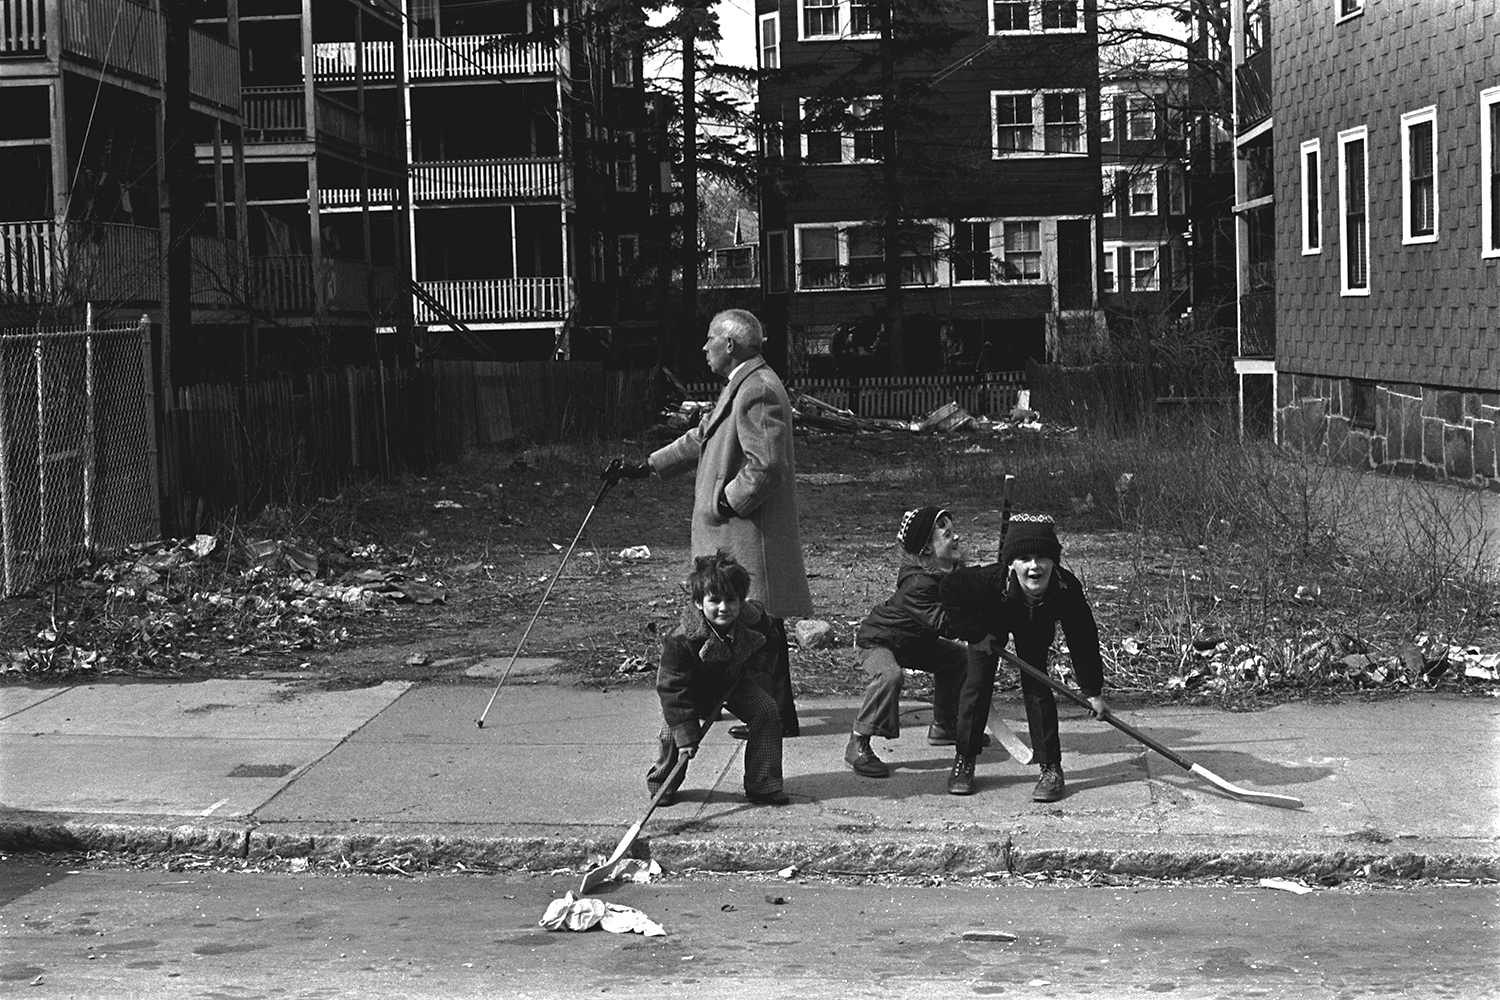 Boys with sticks  Dorchester, MA.  1975